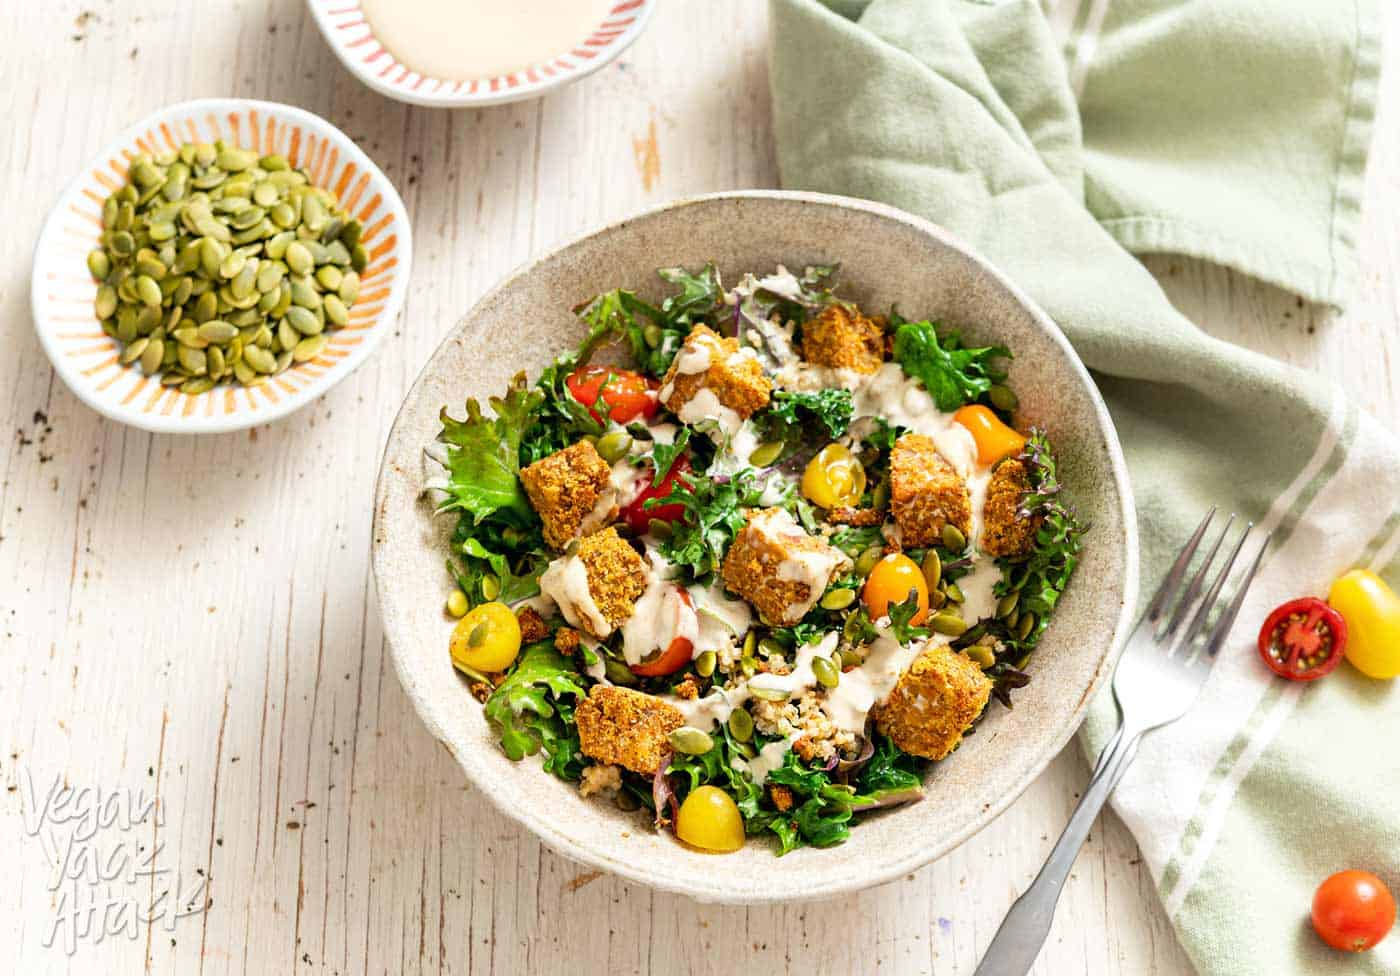 Comforting Tempeh Kale Salad in a ceramic bowl next to a green linen and fork